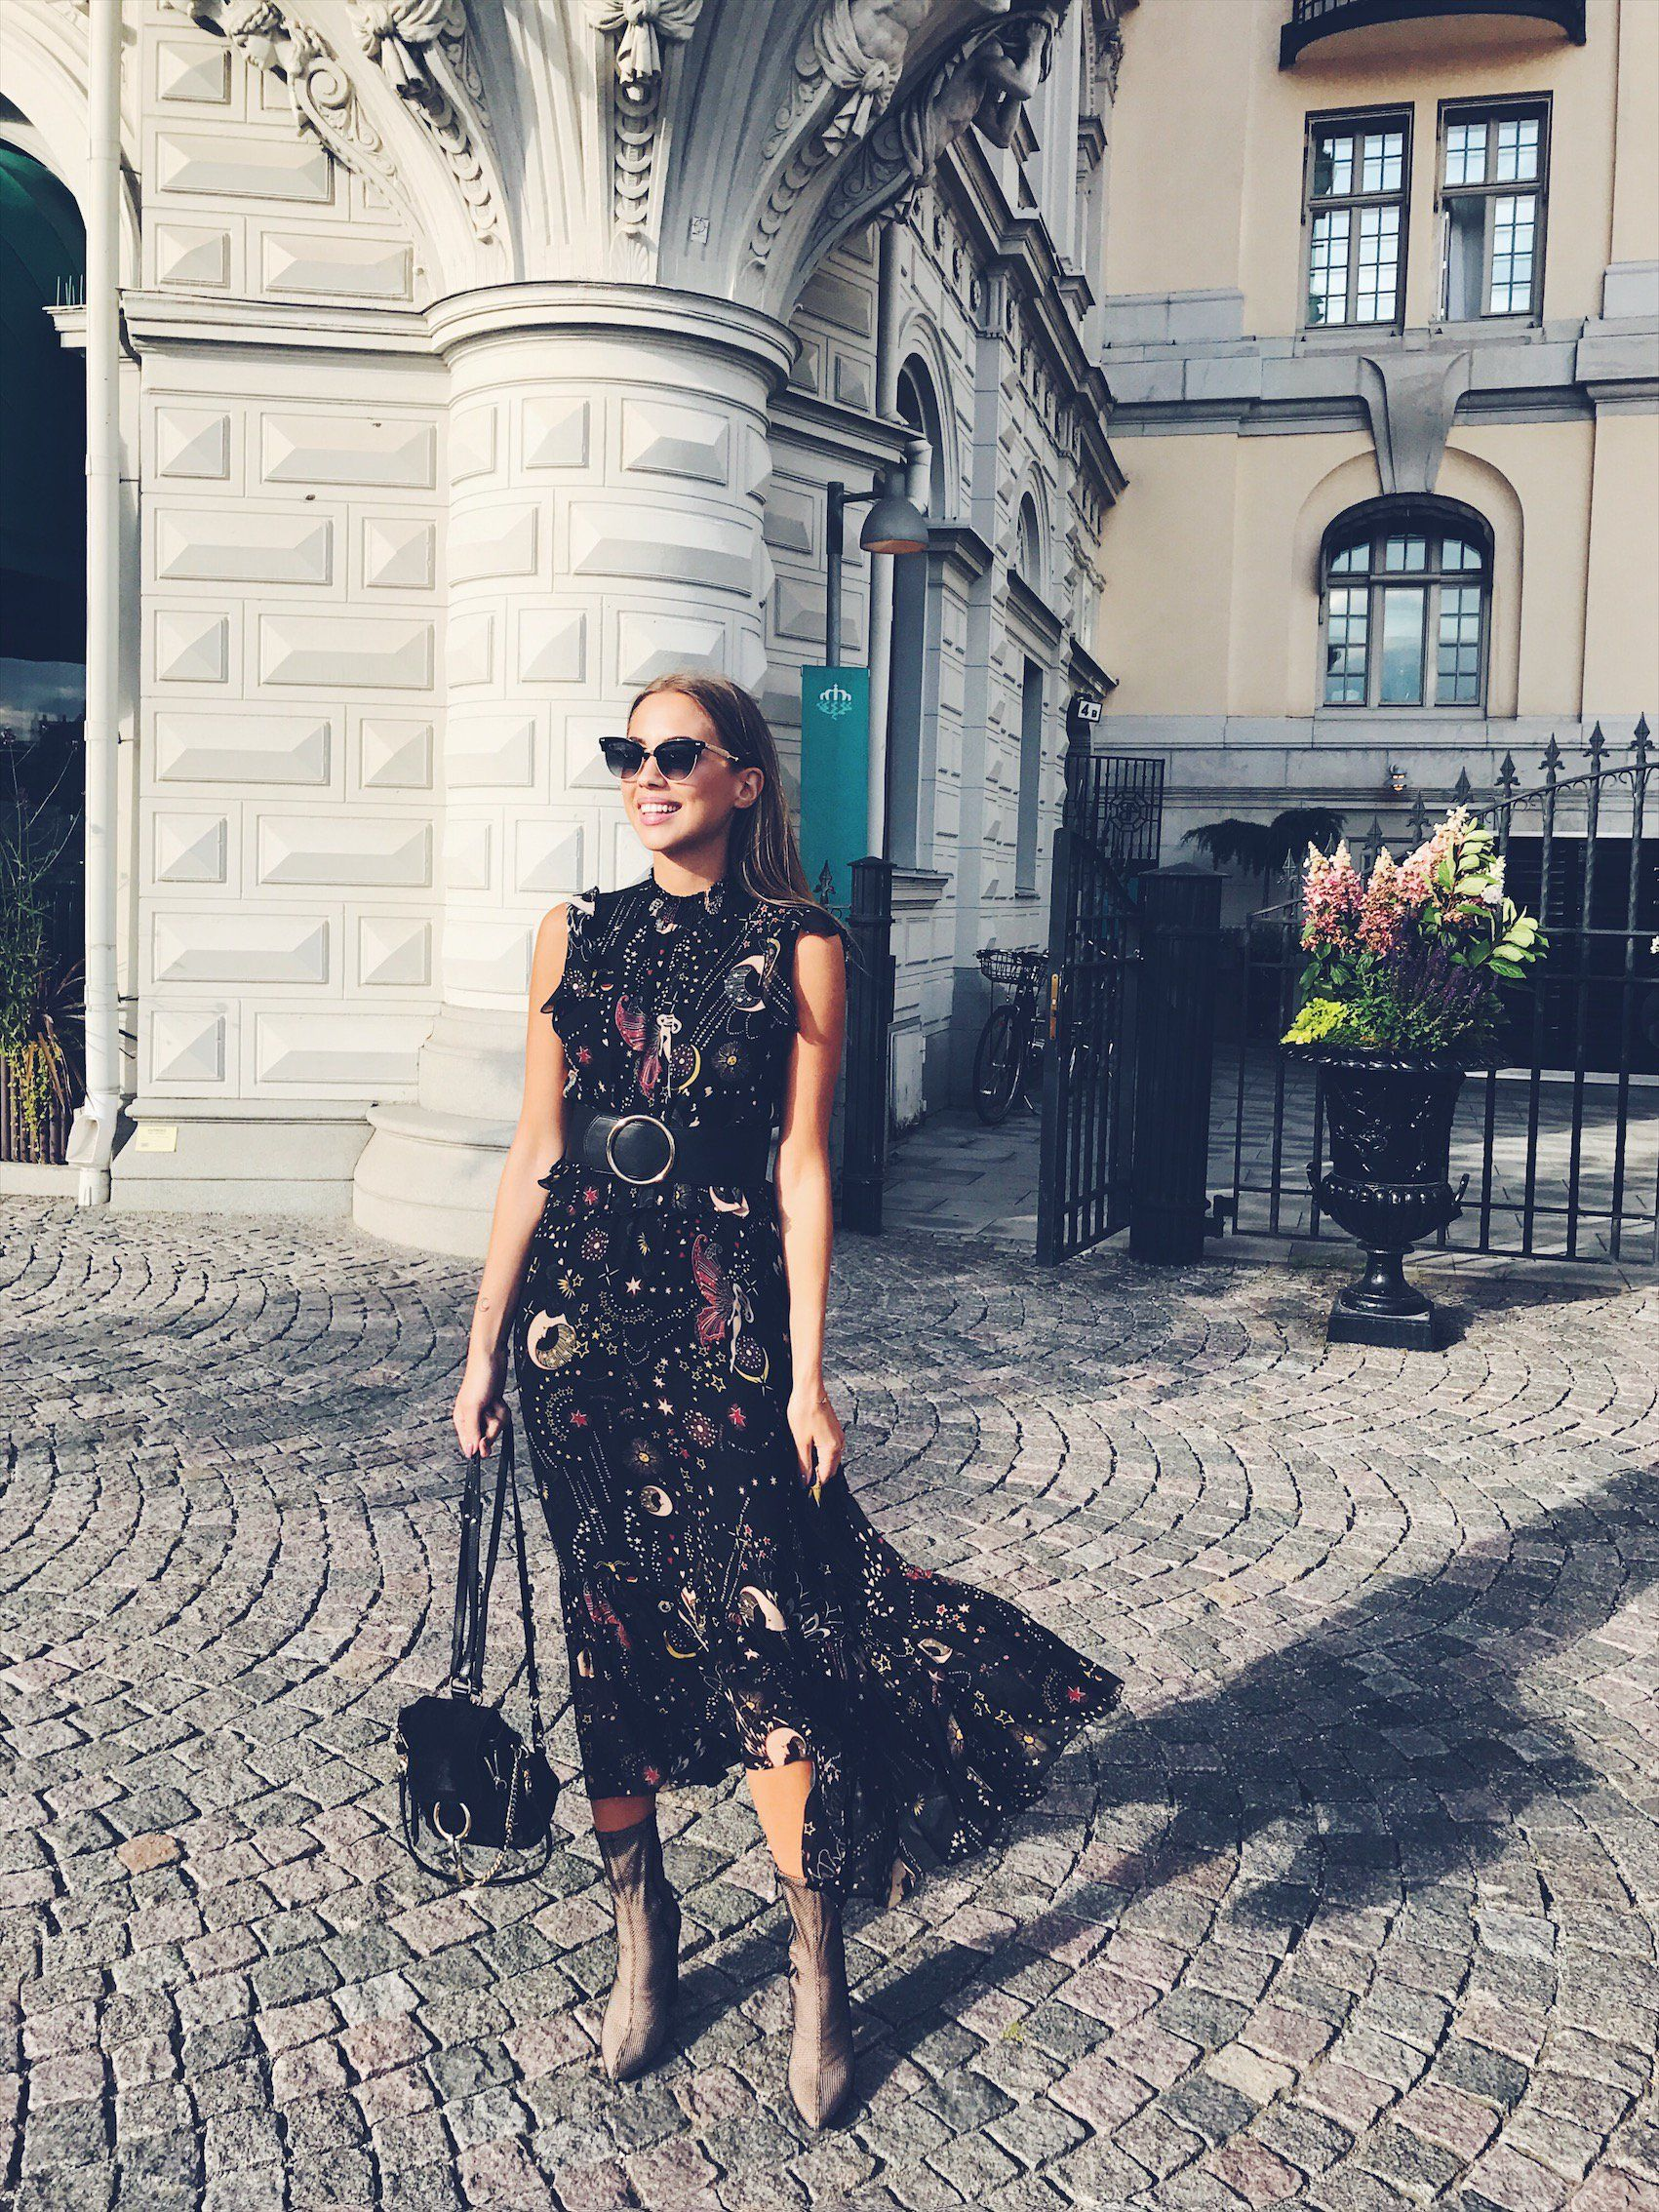 1a4fc178df6 FASHION BLOGGER STYLE - KENZA #howtochic #outfit #fashionblogger #ootd